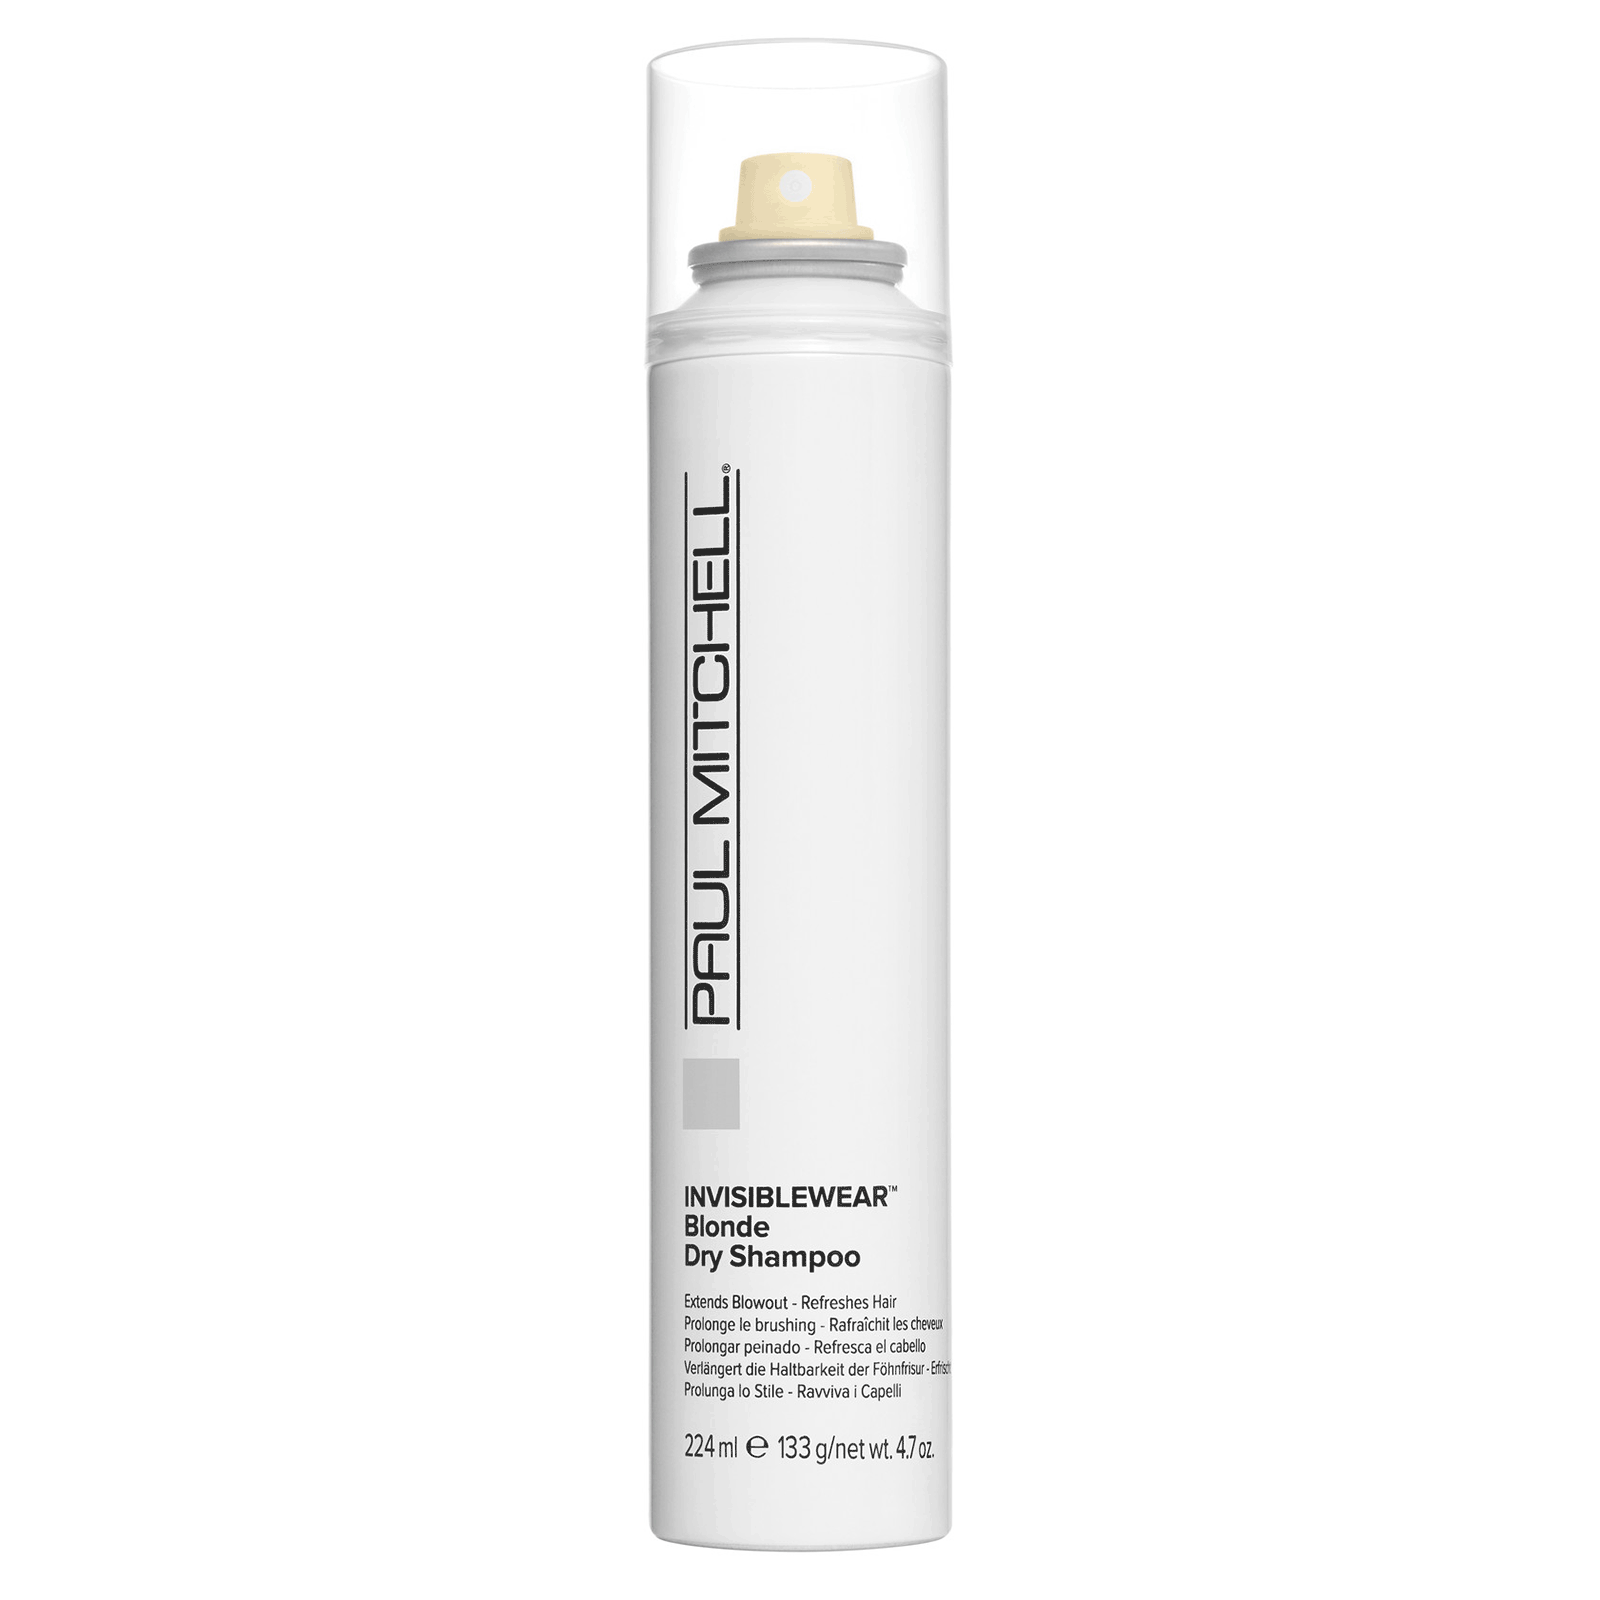 Invisiblewear - Blonde Dry Shampoo